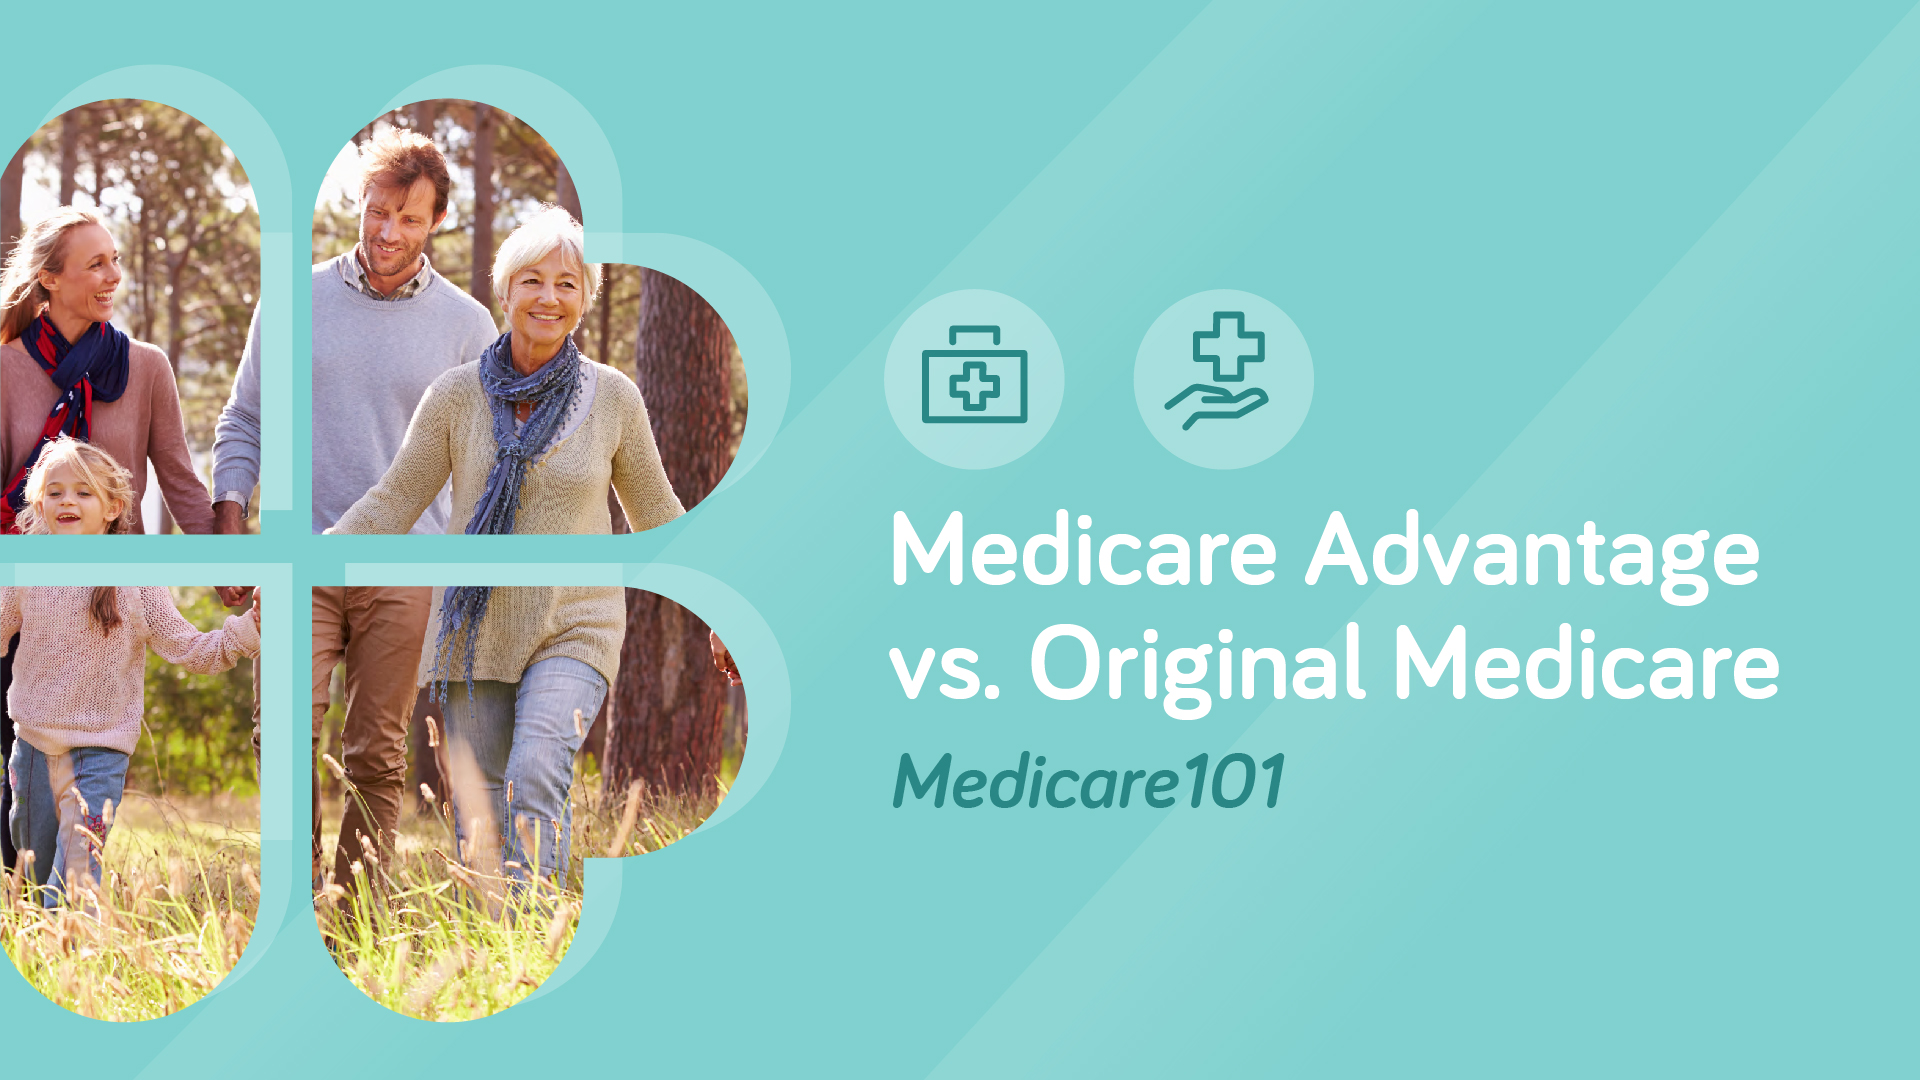 Medicare Advantage vs. Original Medicare